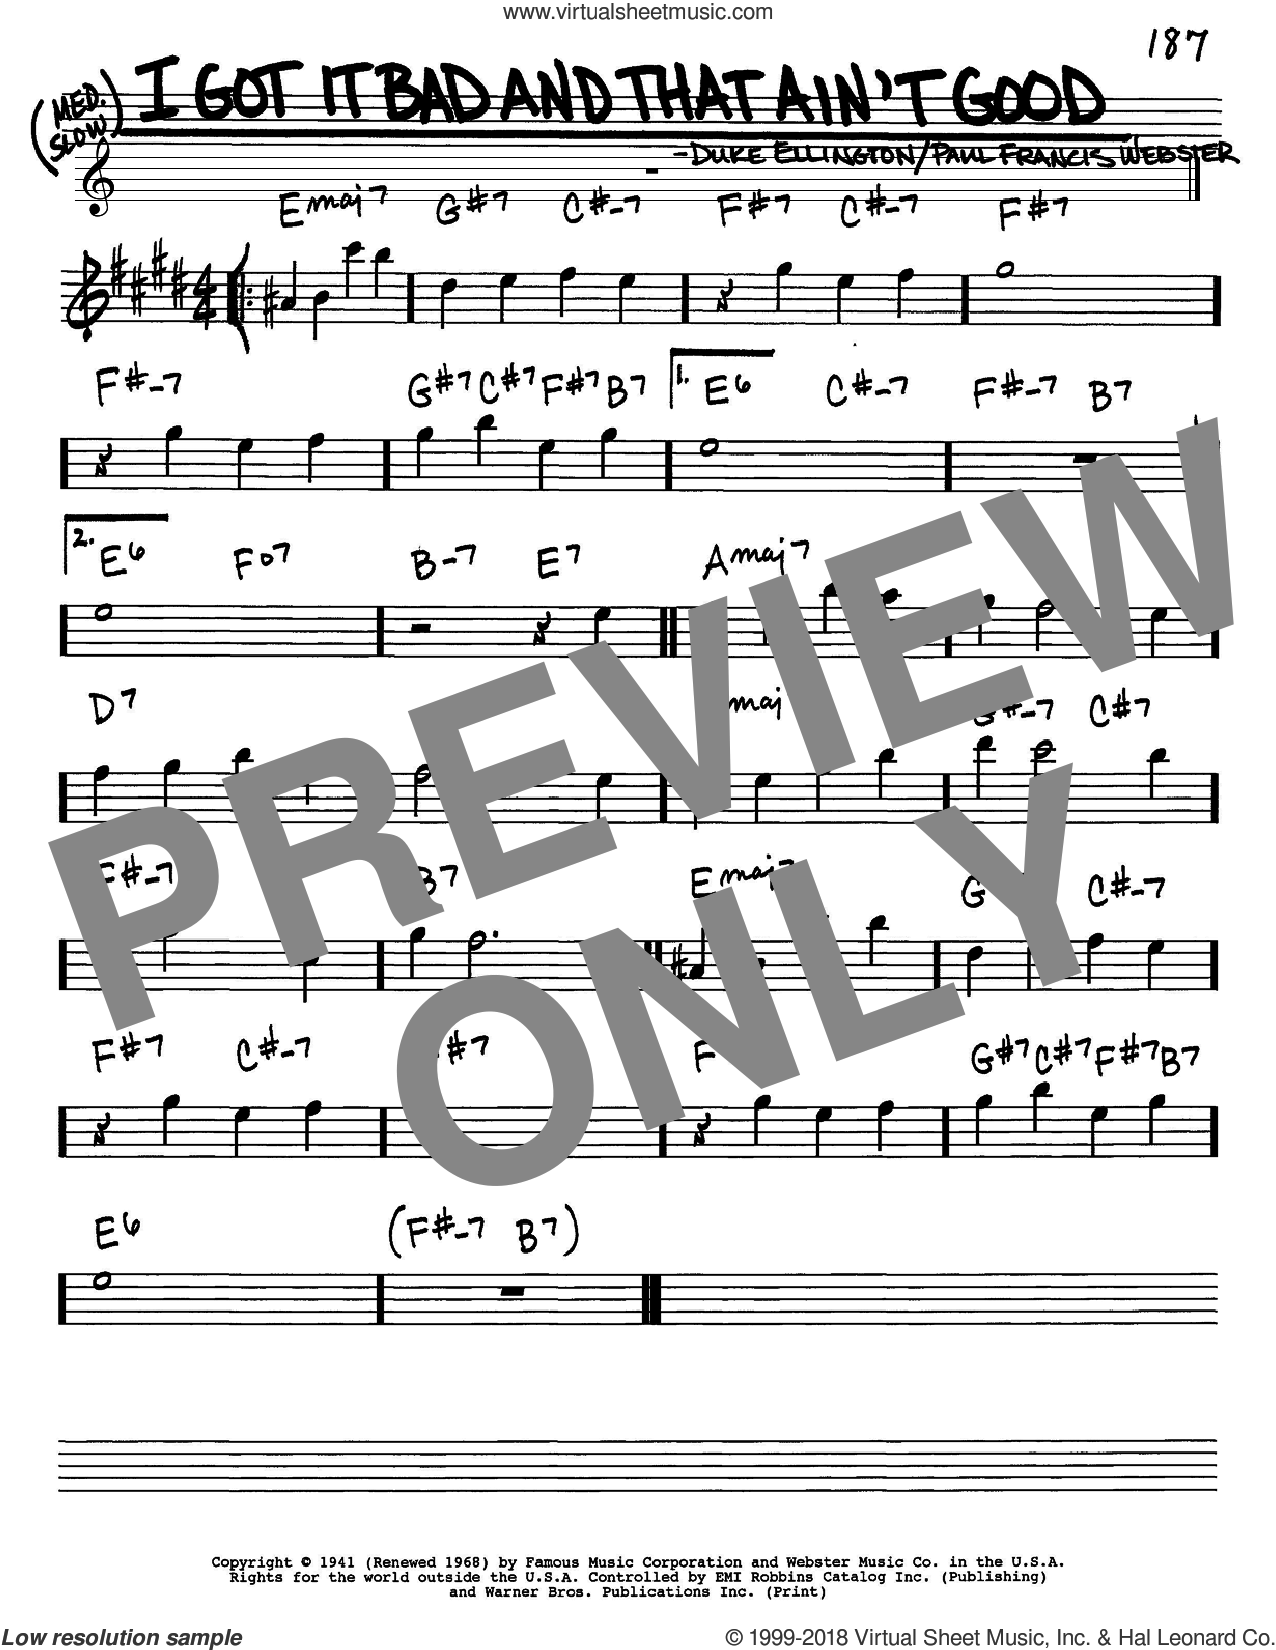 I Got It Bad And That Ain't Good sheet music for voice and other instruments (Eb) by Paul Francis Webster and Duke Ellington. Score Image Preview.